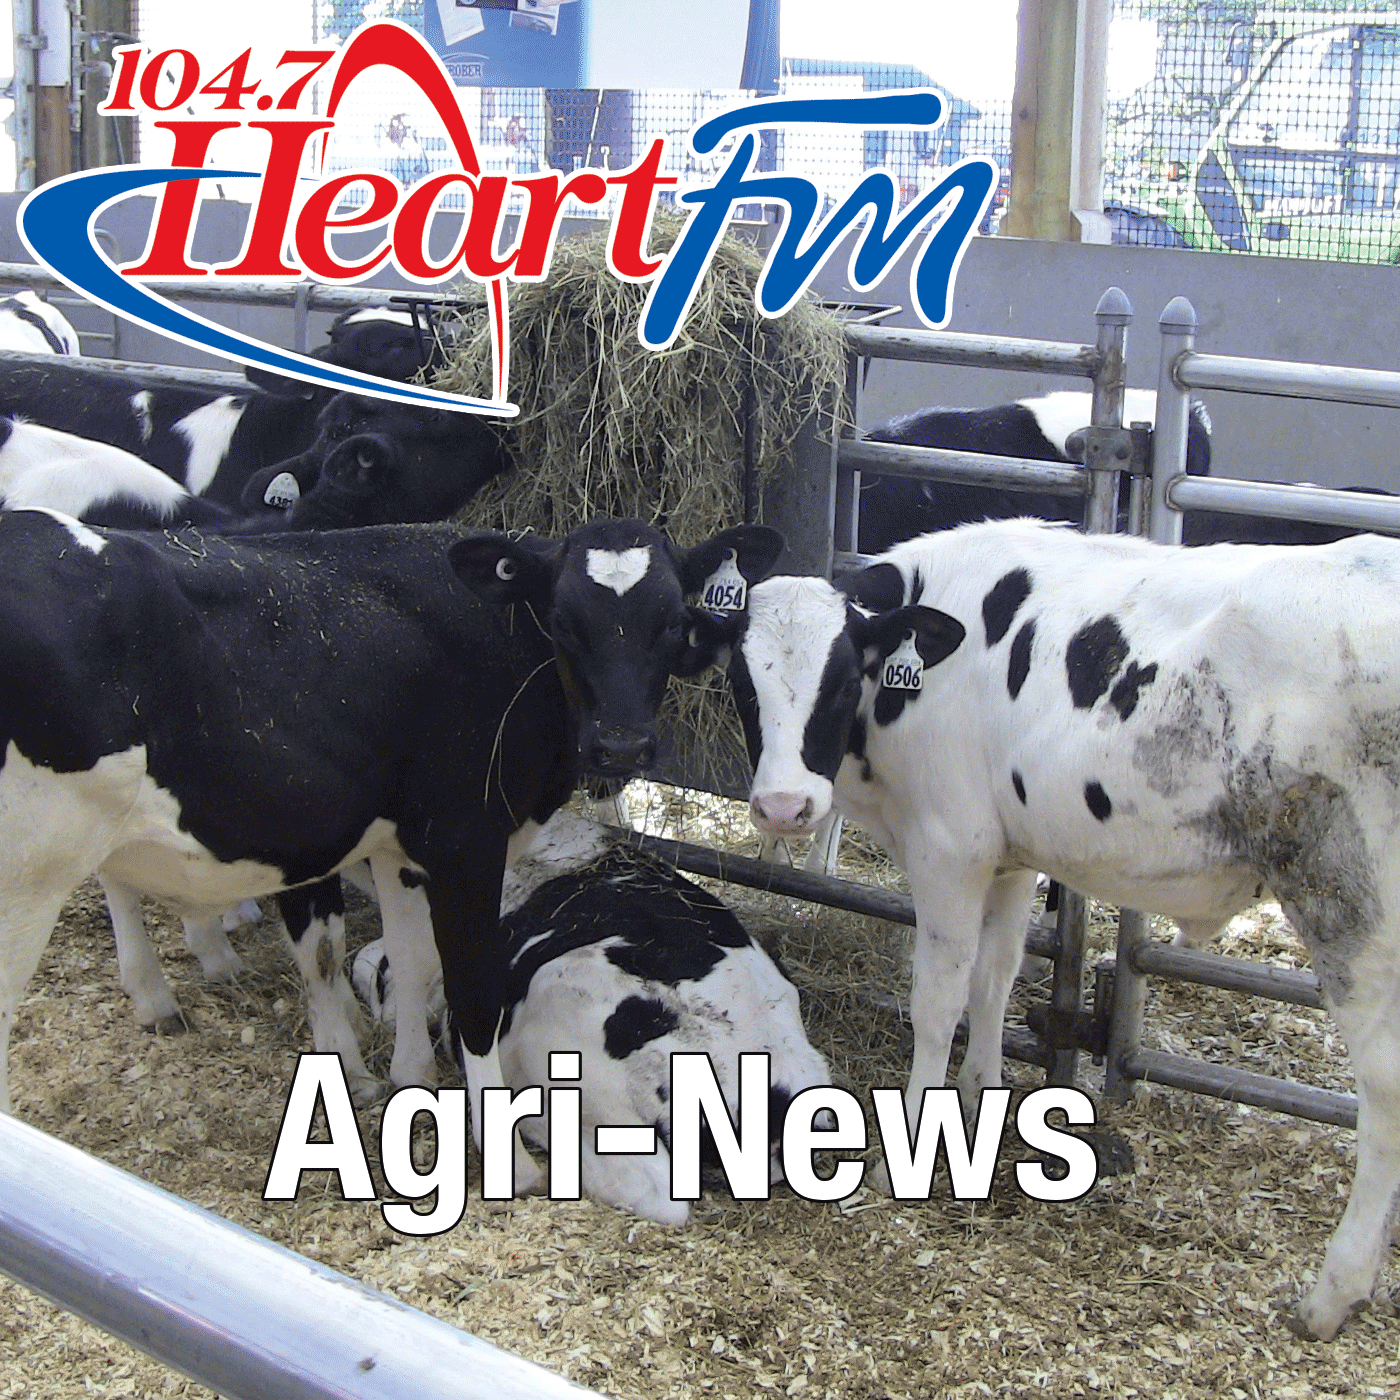 Oxford County Agri-News